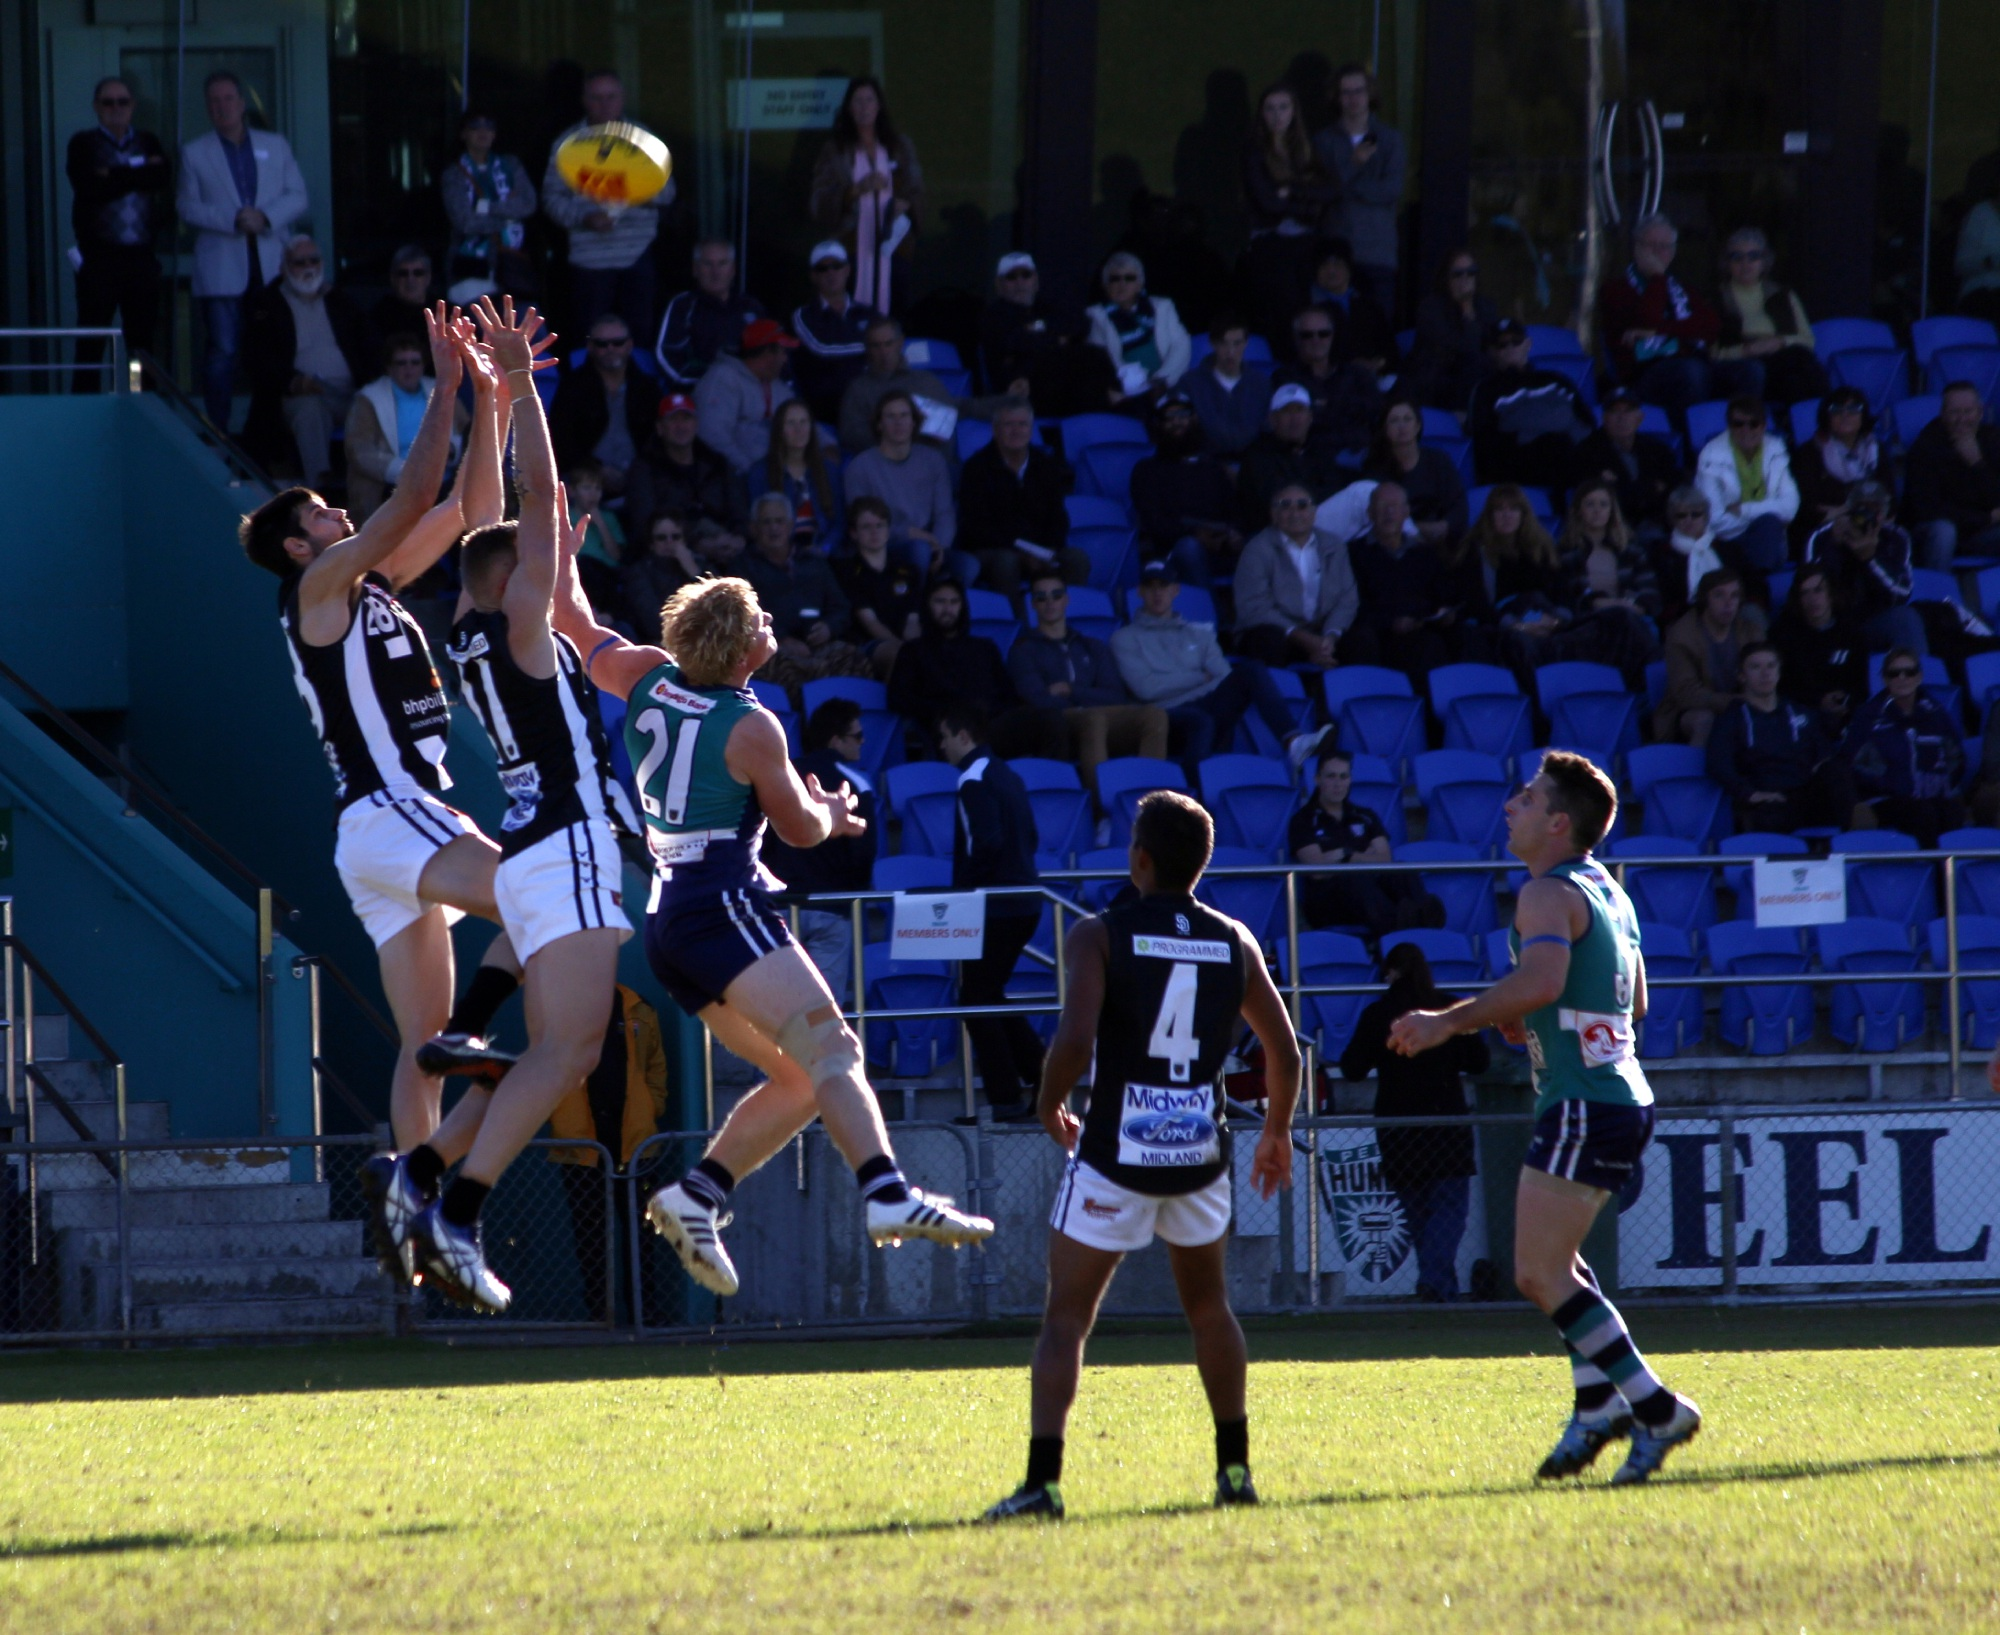 WAFL: Thunder suffers 39-point loss to bottom-placed Swan Districts